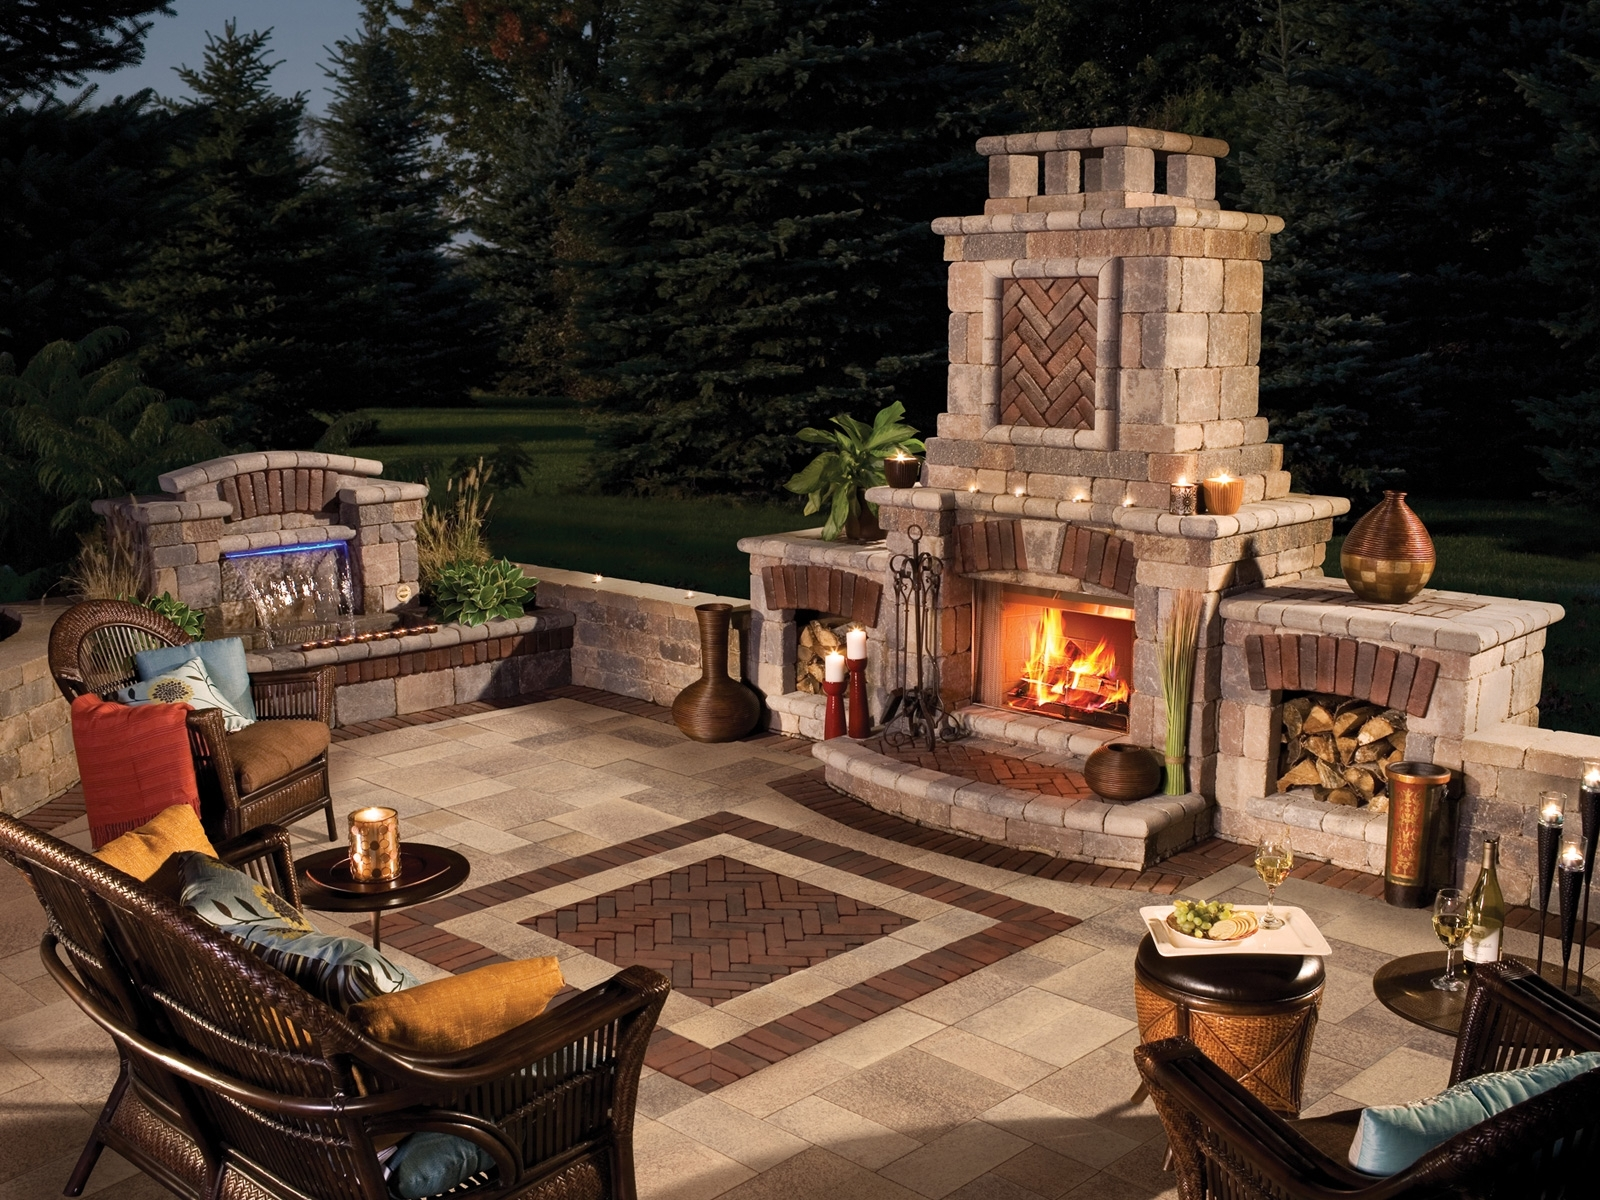 Exteriors Eyecatching Modern Outdoor Fireplaces Turn The Patio With Regard To Fake Outdoor Fireplace Build Fake Outdoor Fireplace